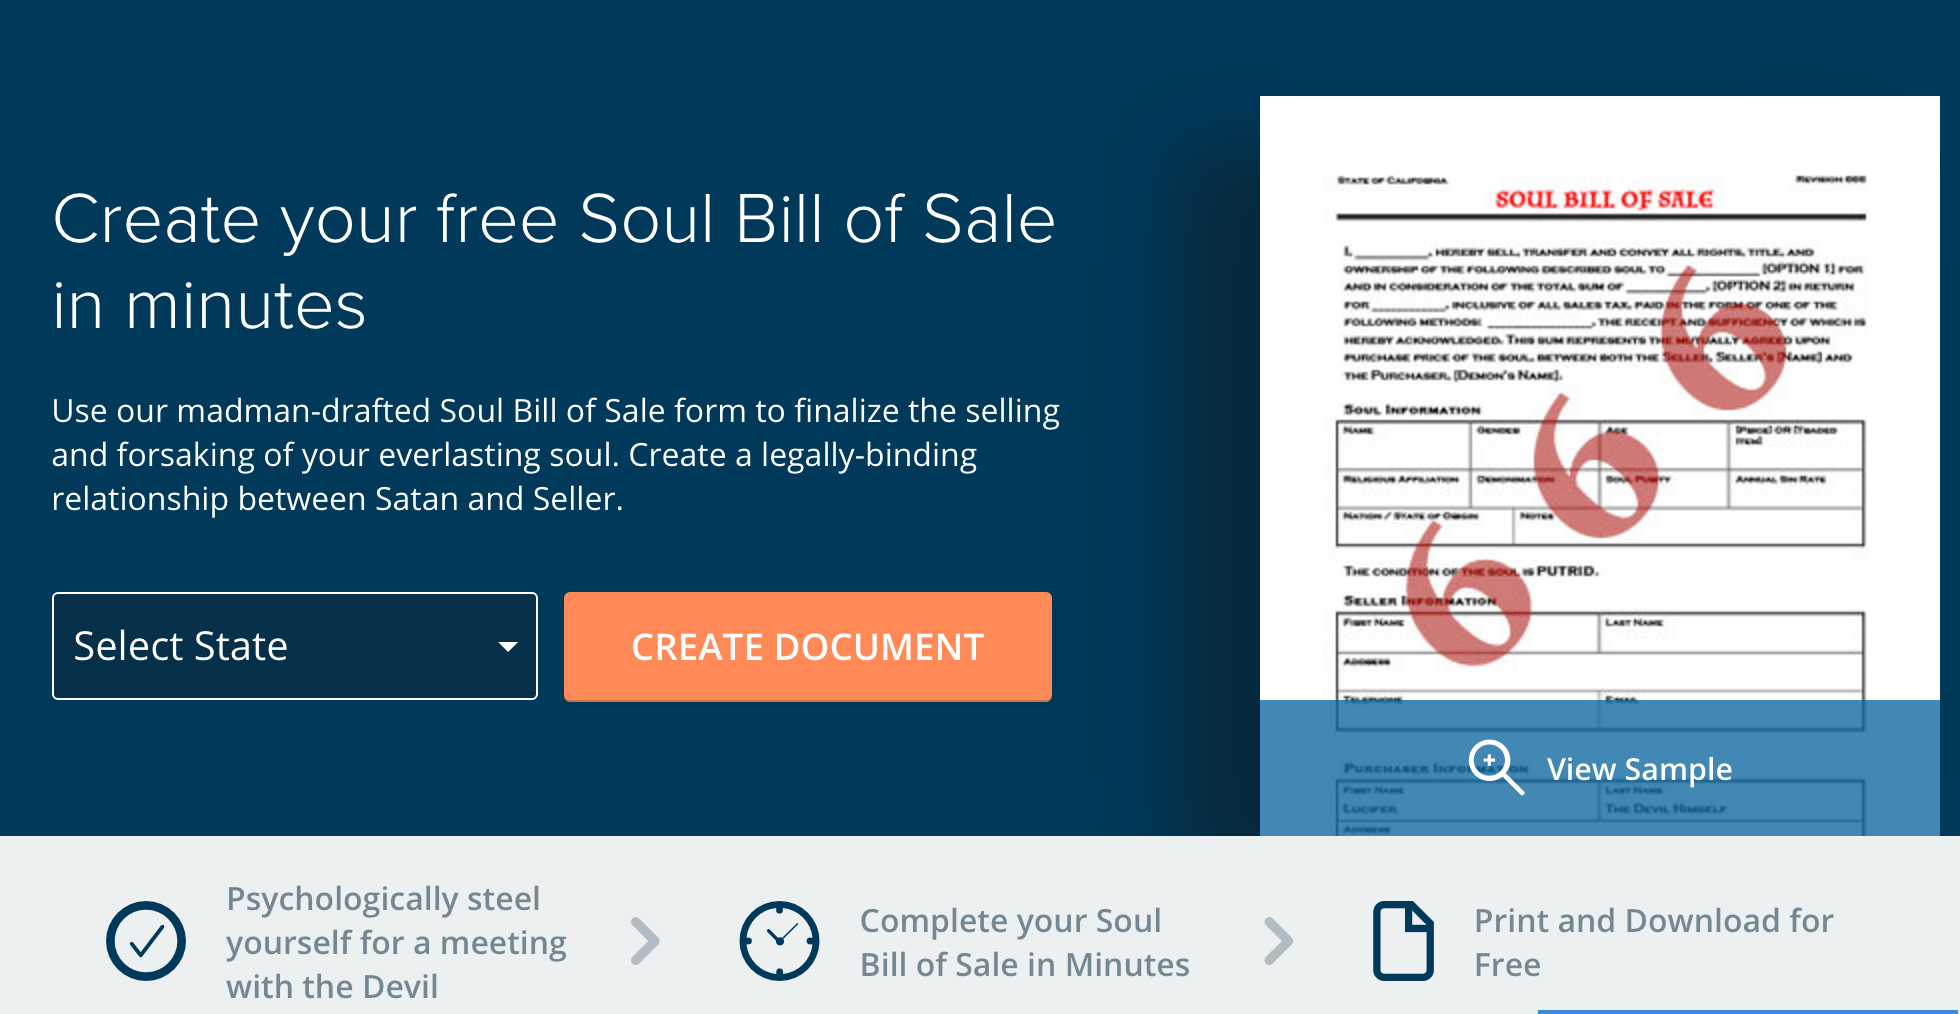 Legal Contract Template | Legal Contract Website Offers Template For Those Who Want To Sell